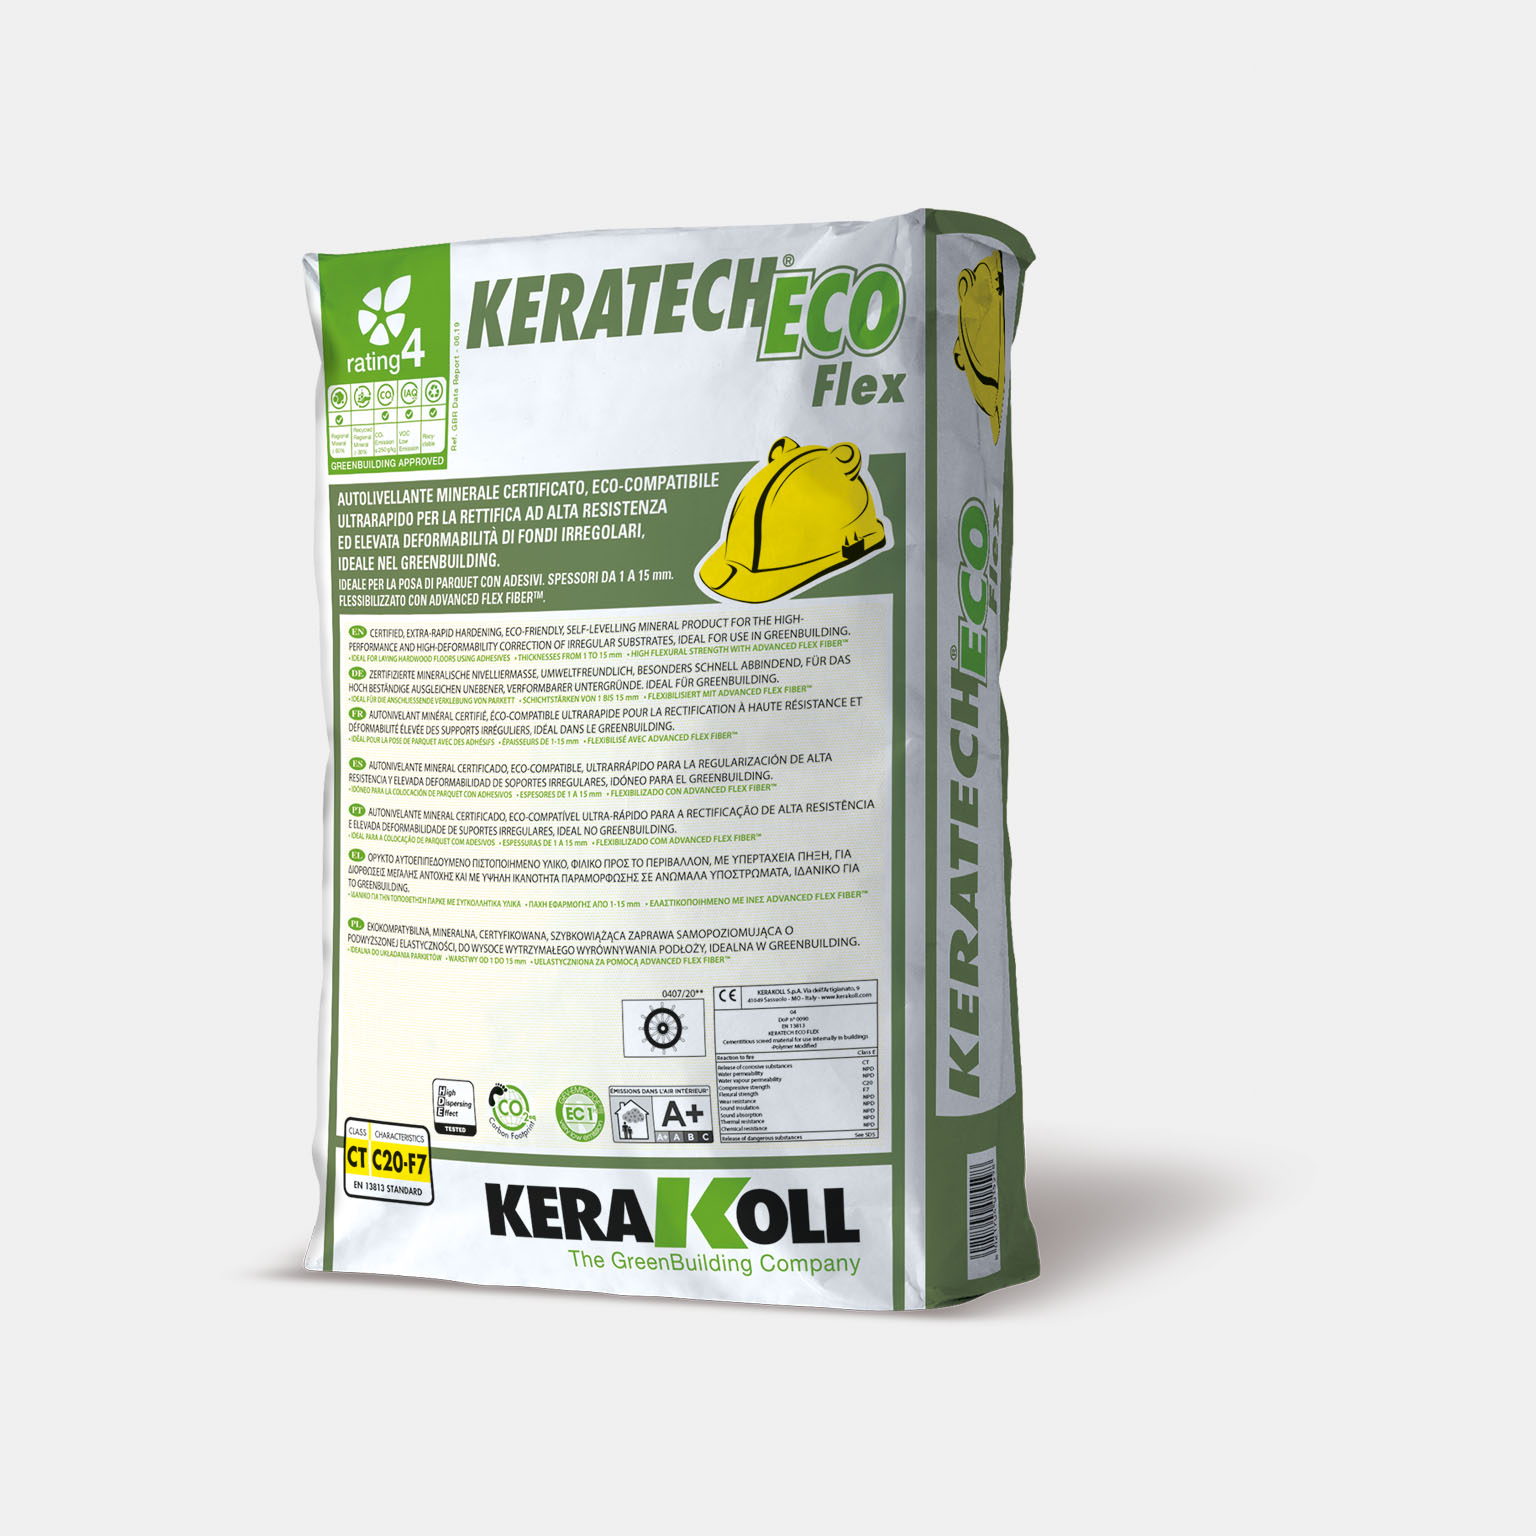 Keratech Eco Flex - immagine pack